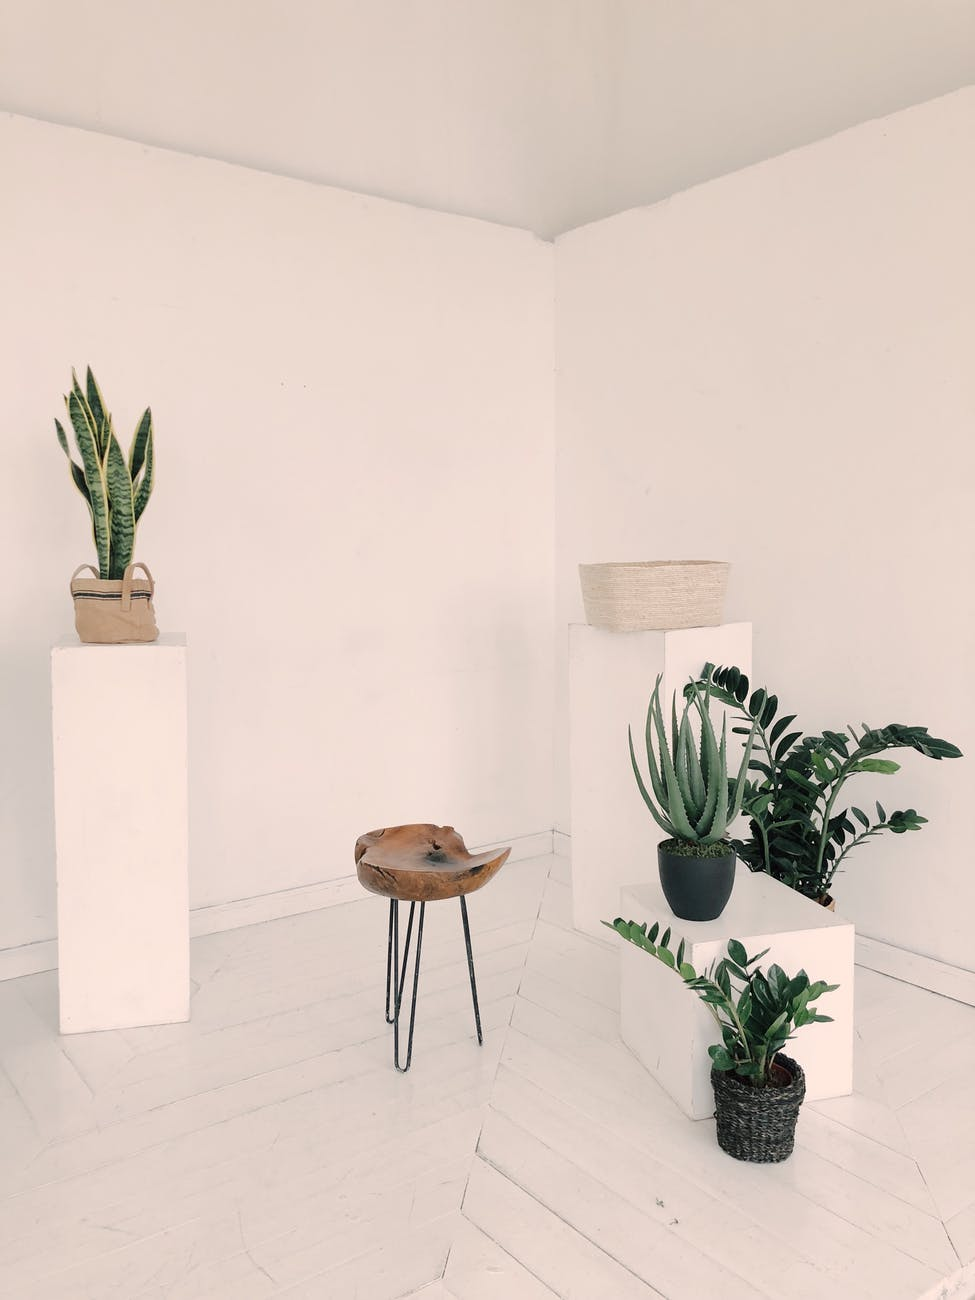 photo of plants near wooden chair